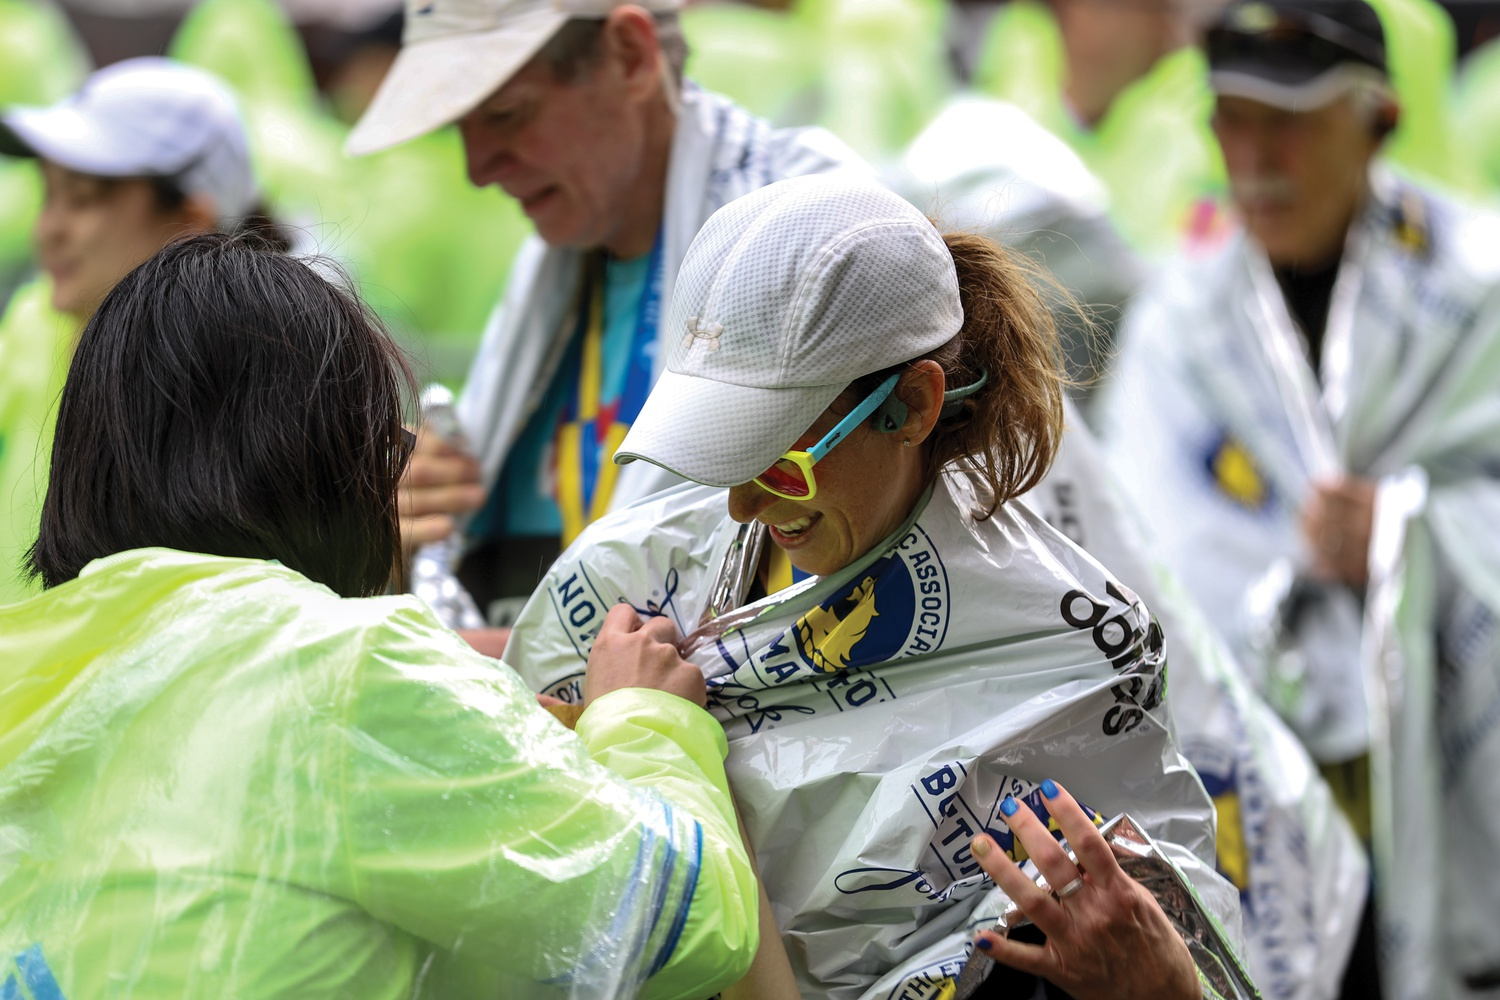 A marathon participant has a mylar blanket wrapped around her after concluding the race.